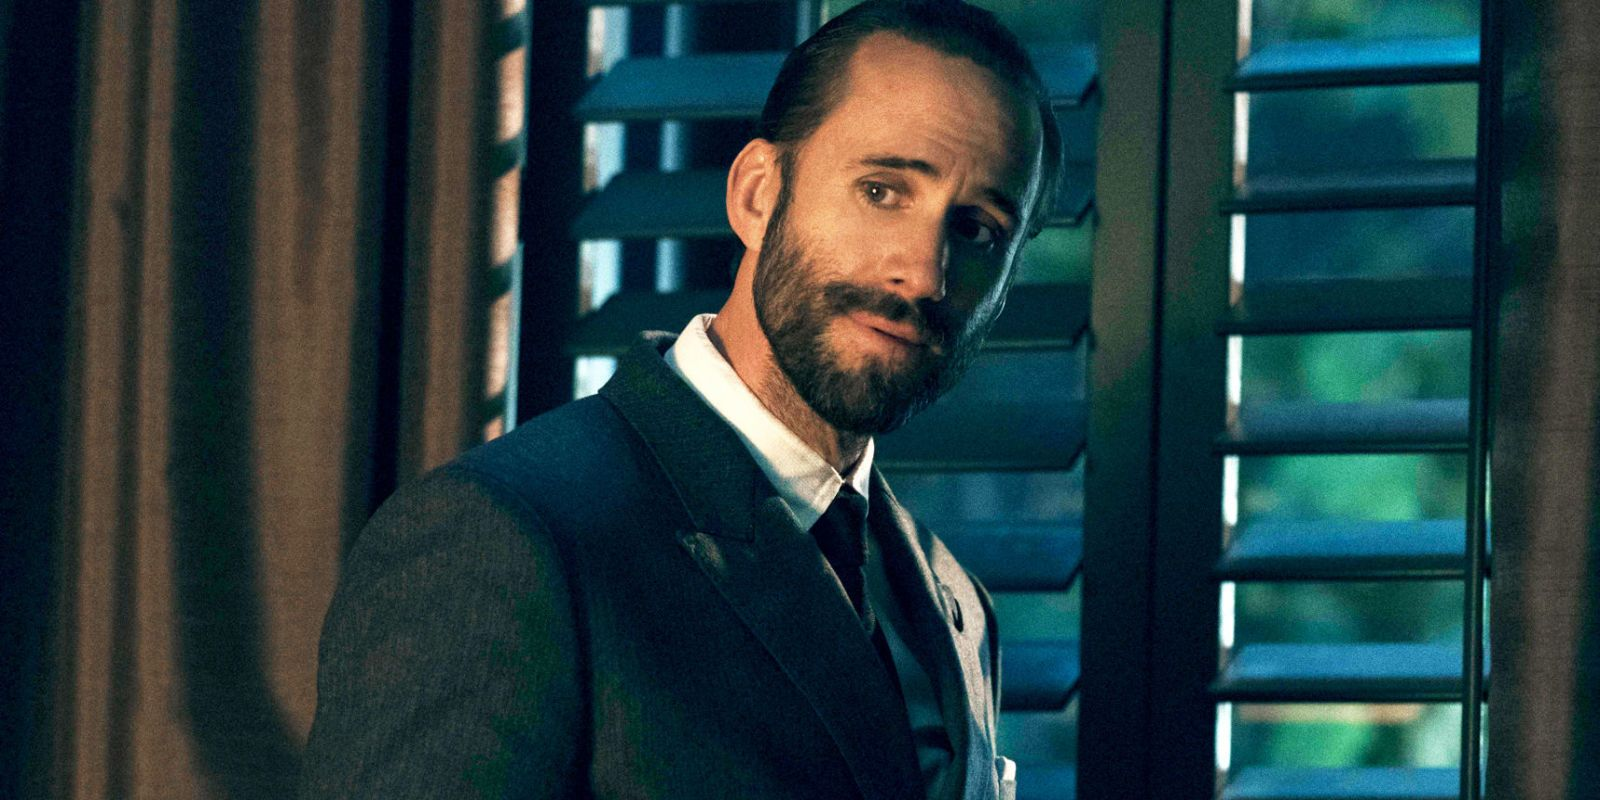 Yes Joseph Fiennes Did Base His Handmaid S Tale Character On Real Life Politicians Joseph Fiennes Joseph Actors